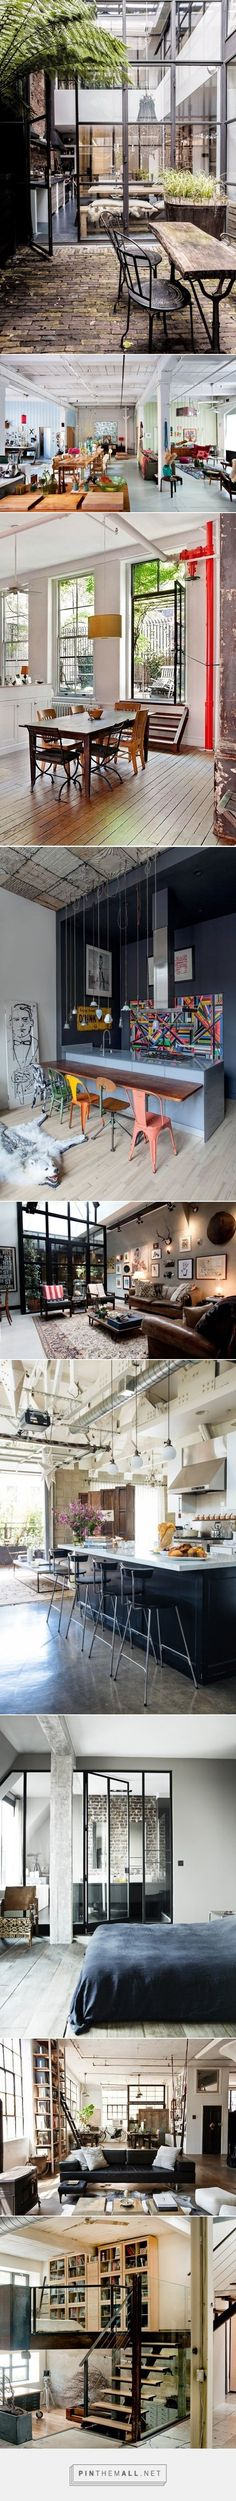 Tour 10 Beautiful Loft Apartments From All Over the World | Apartment Therapy - created via http://pinthemall.net